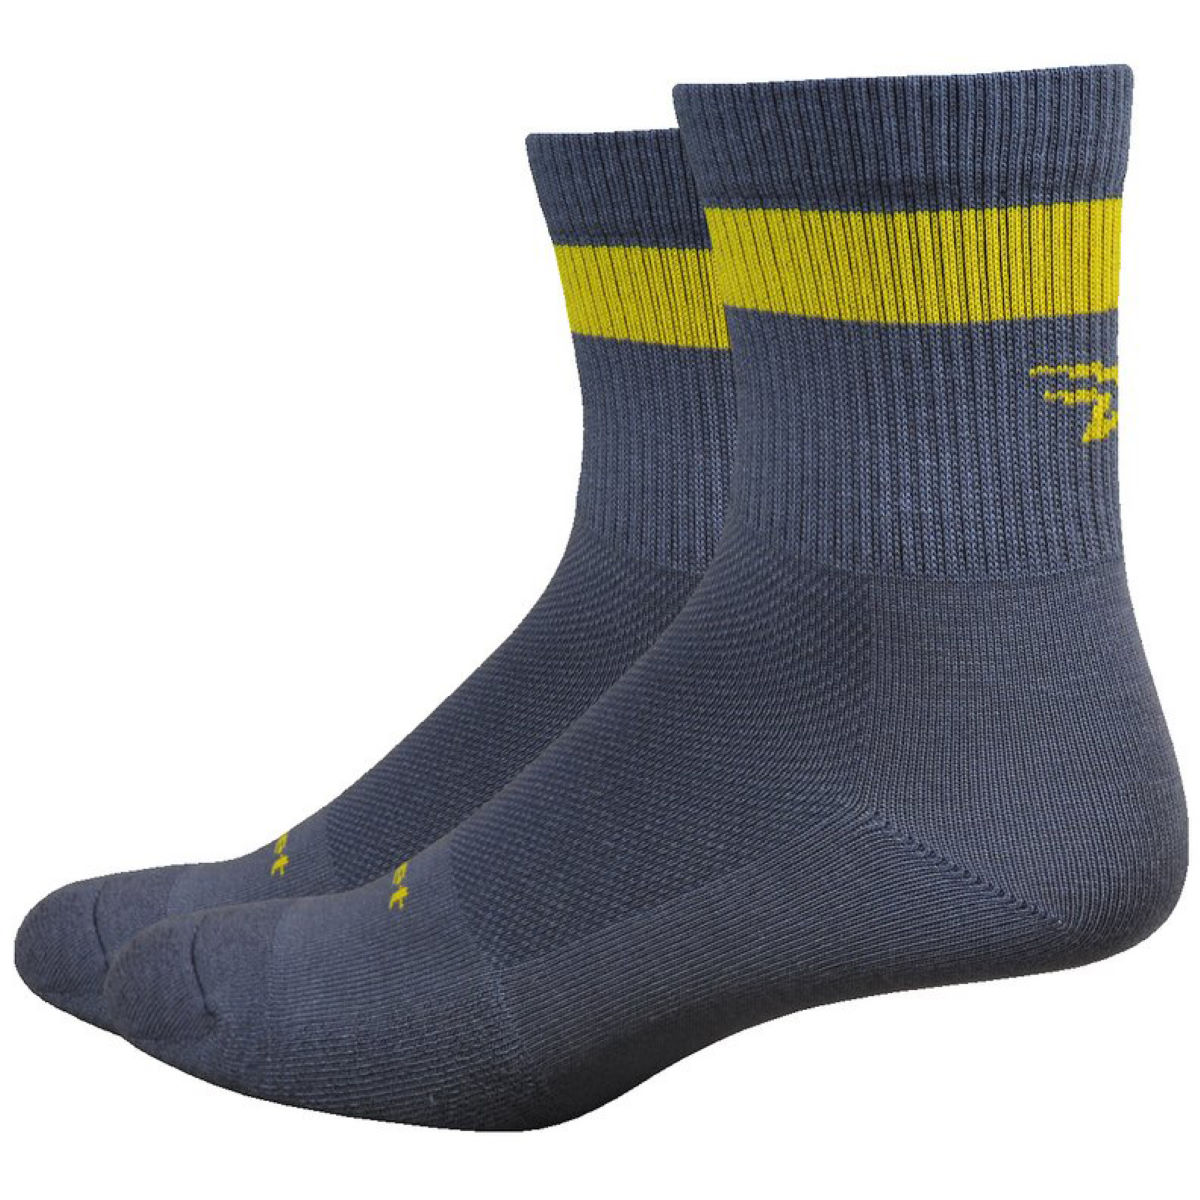 "DeFeet DeFeet Levitator Trail 3"" Dirtbagger Socks   Socks"